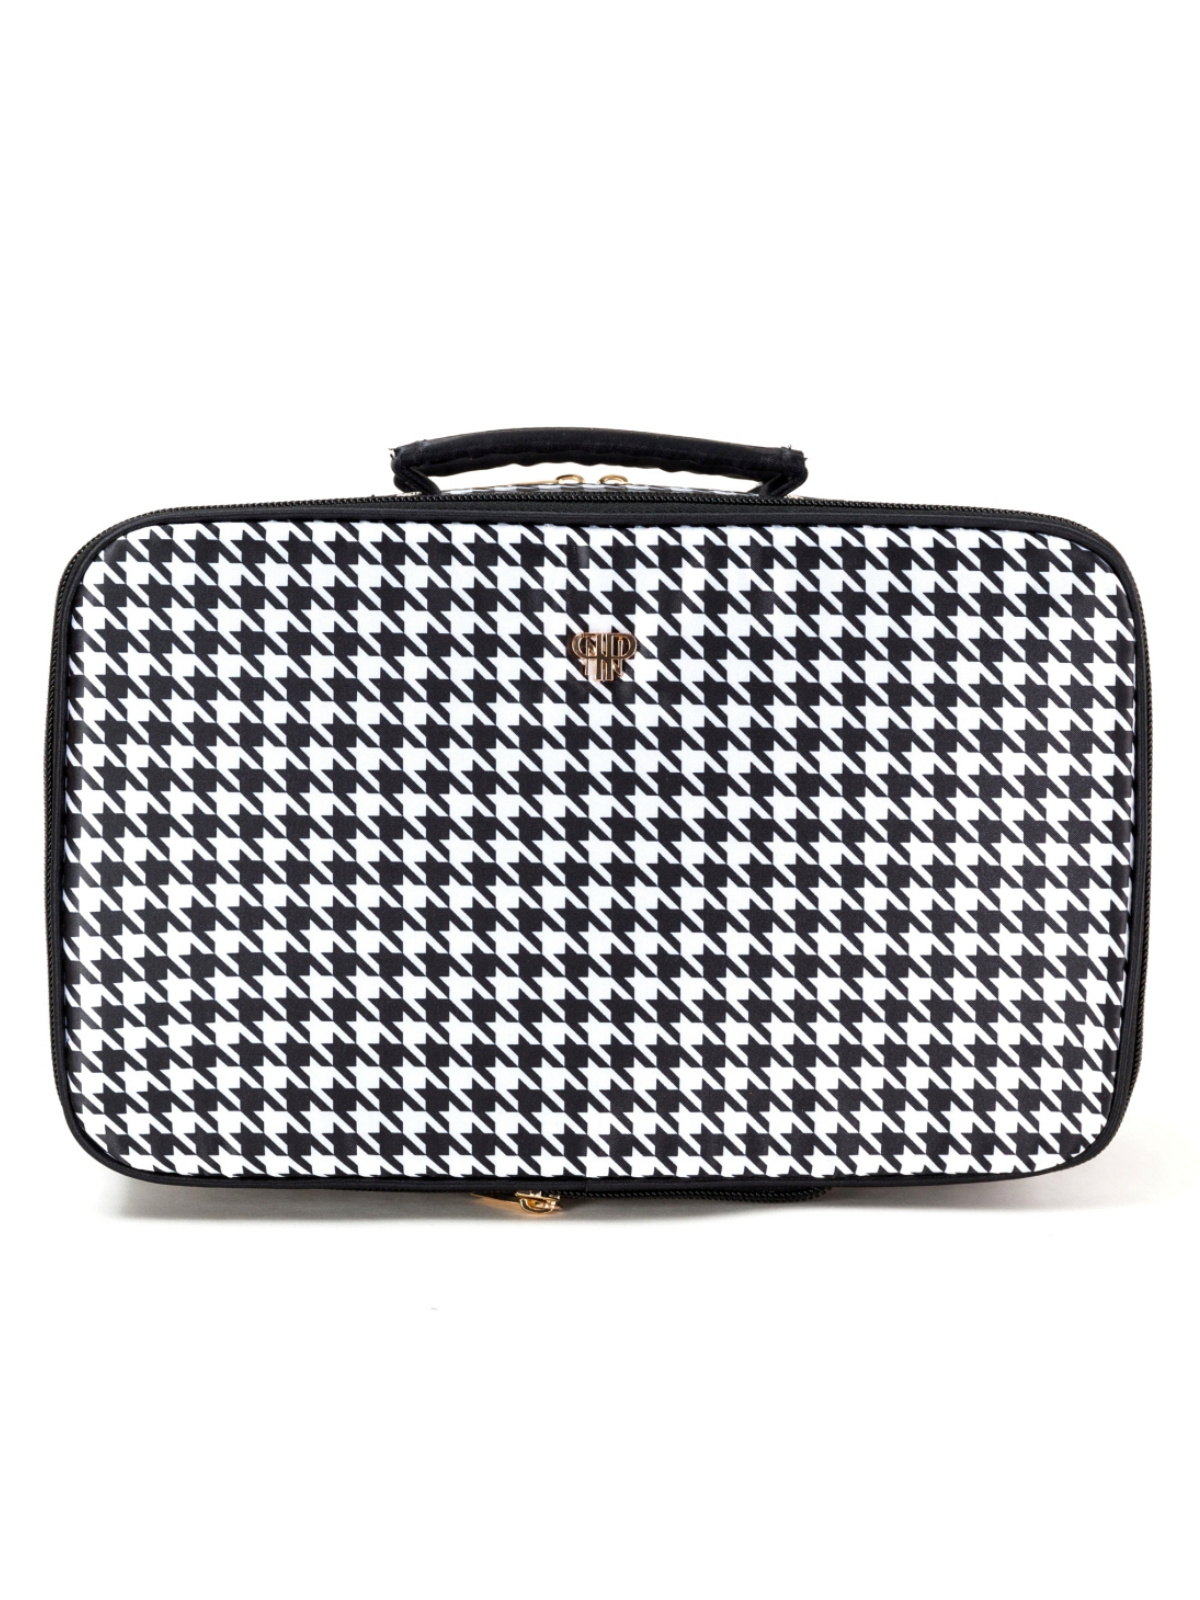 389bd01c2511 PurseN Amour Travel Toiletry Bag Makeup Beauty Case - Houndstooth